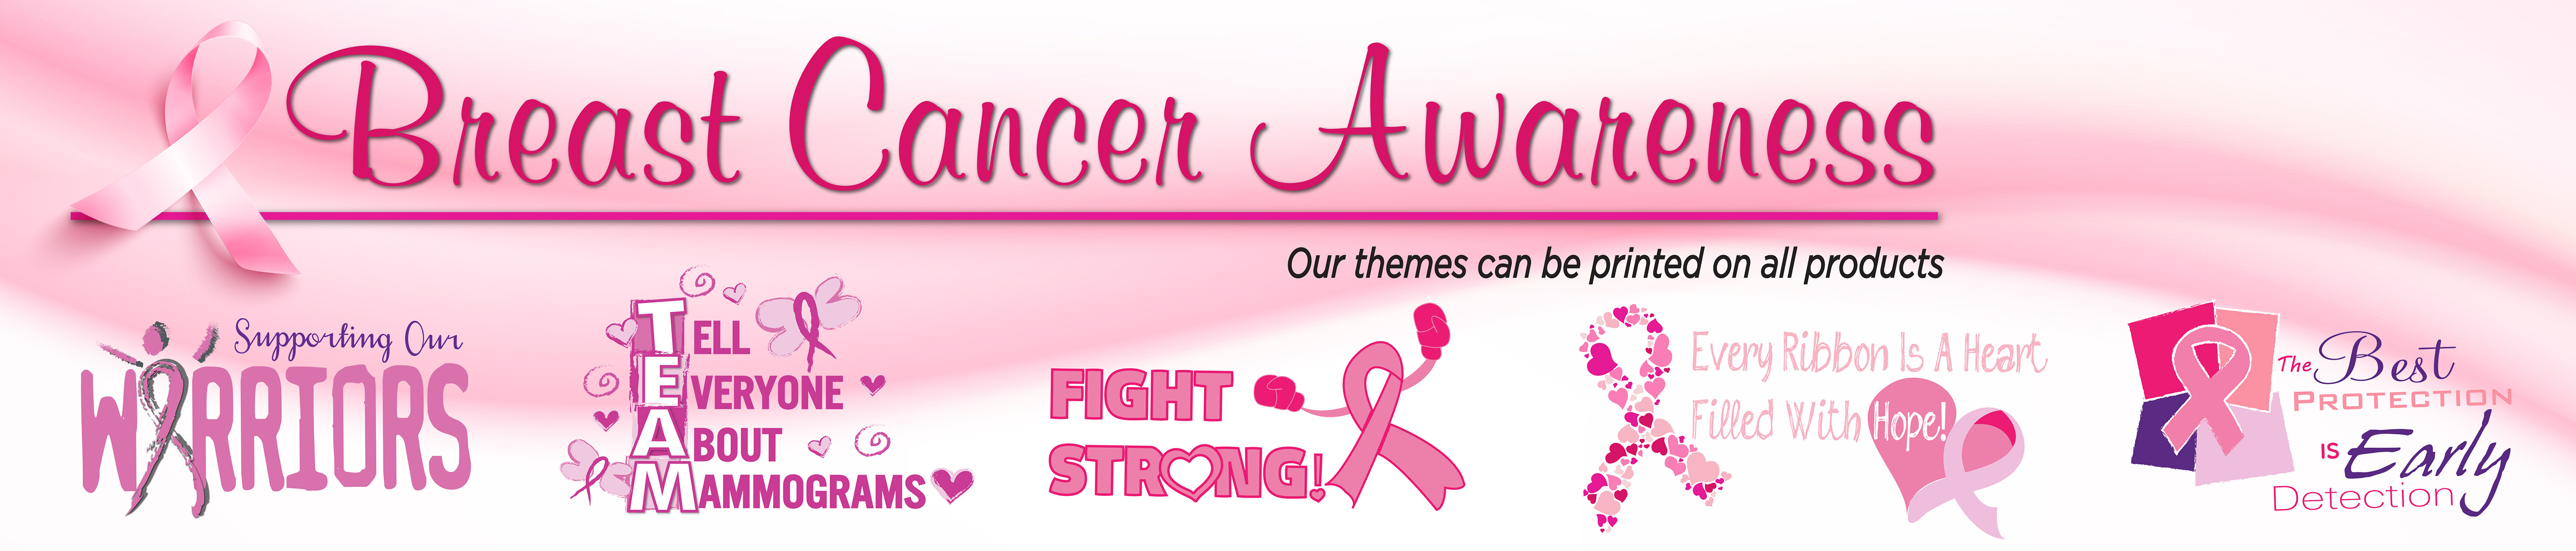 Breast Cancer Awareness Merchandise Slogans | Care Promotions